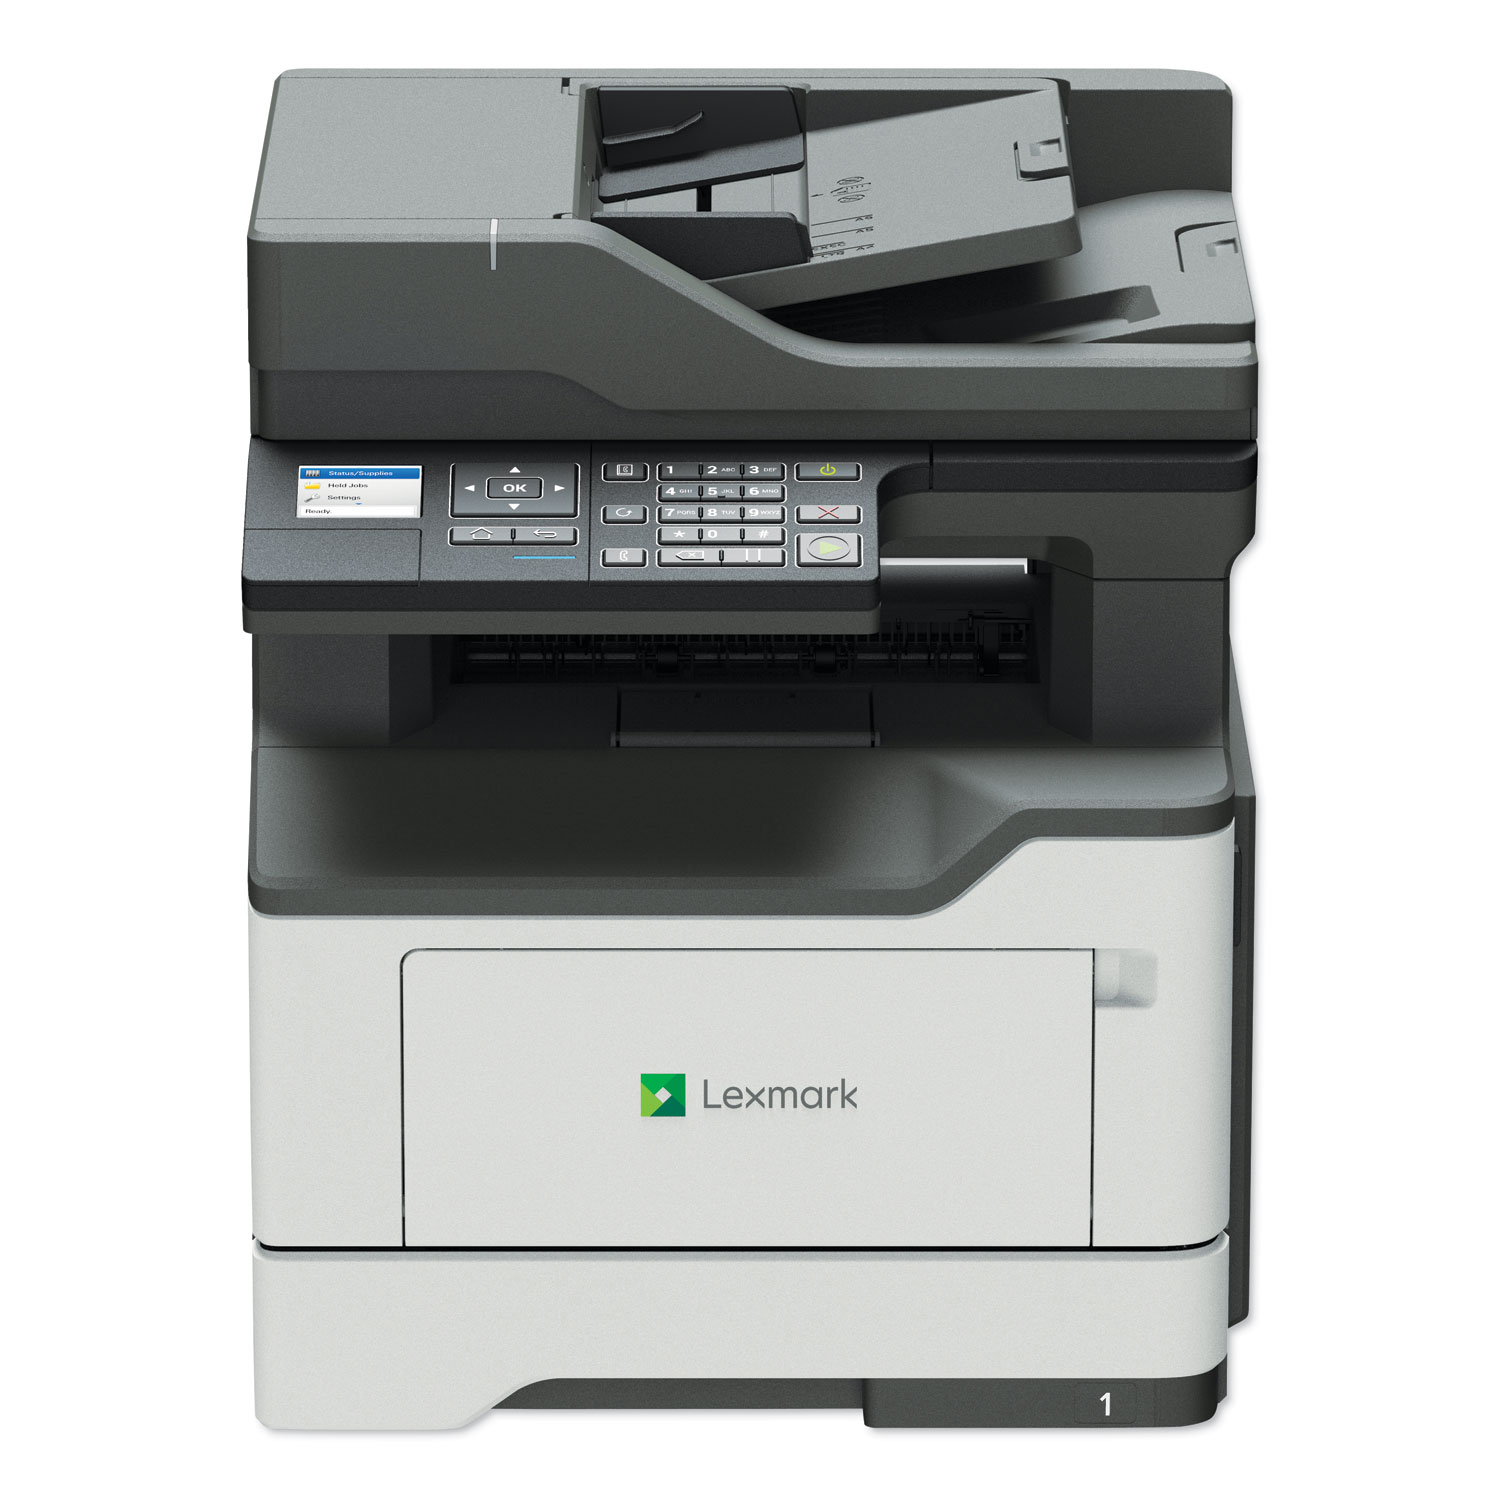 MB2338adw Wireless Laser Printer